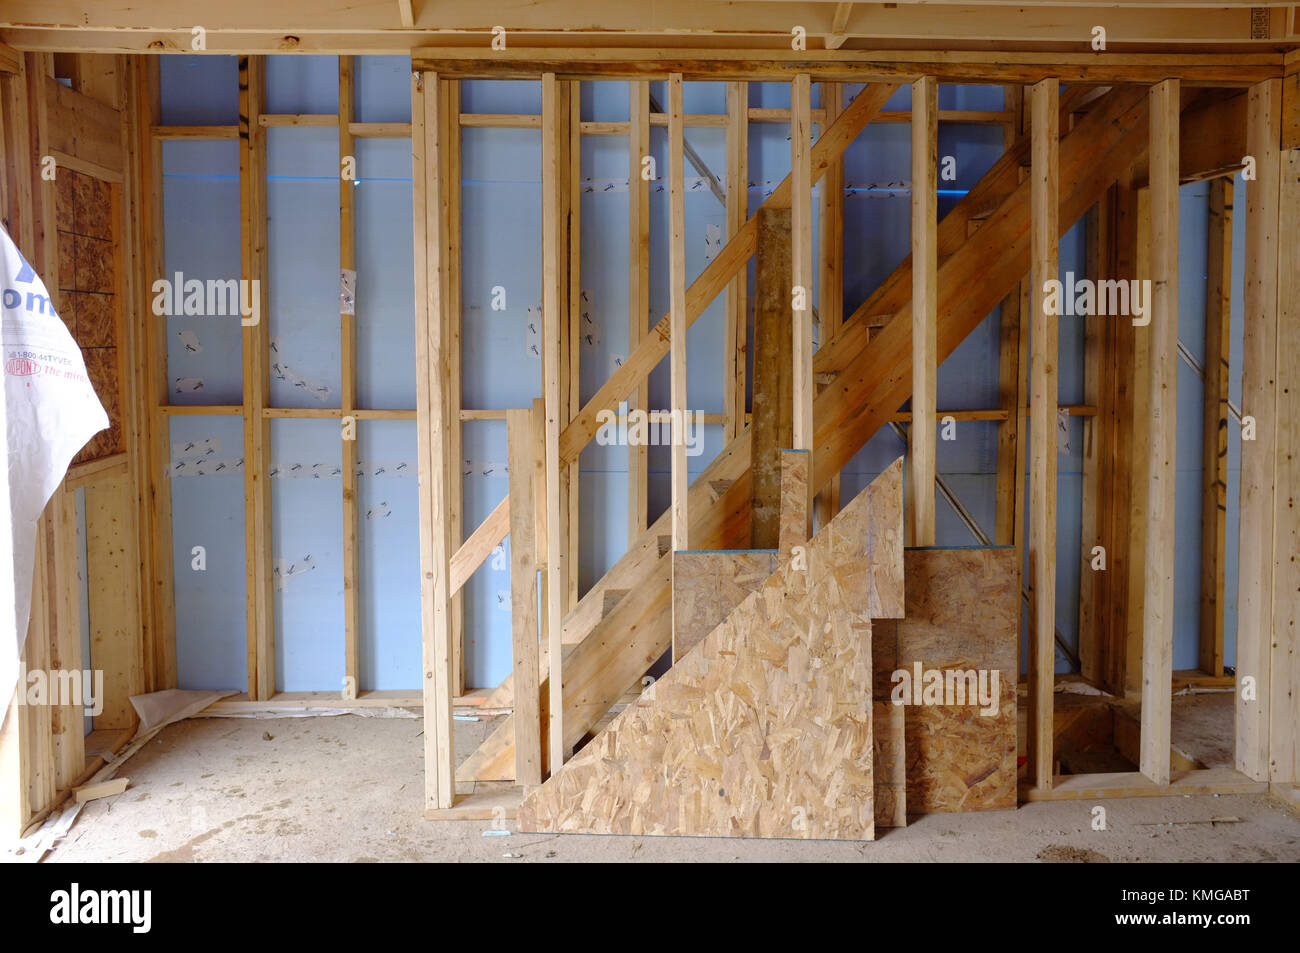 Stud walls stock photos stud walls stock images alamy for Building a house in ontario